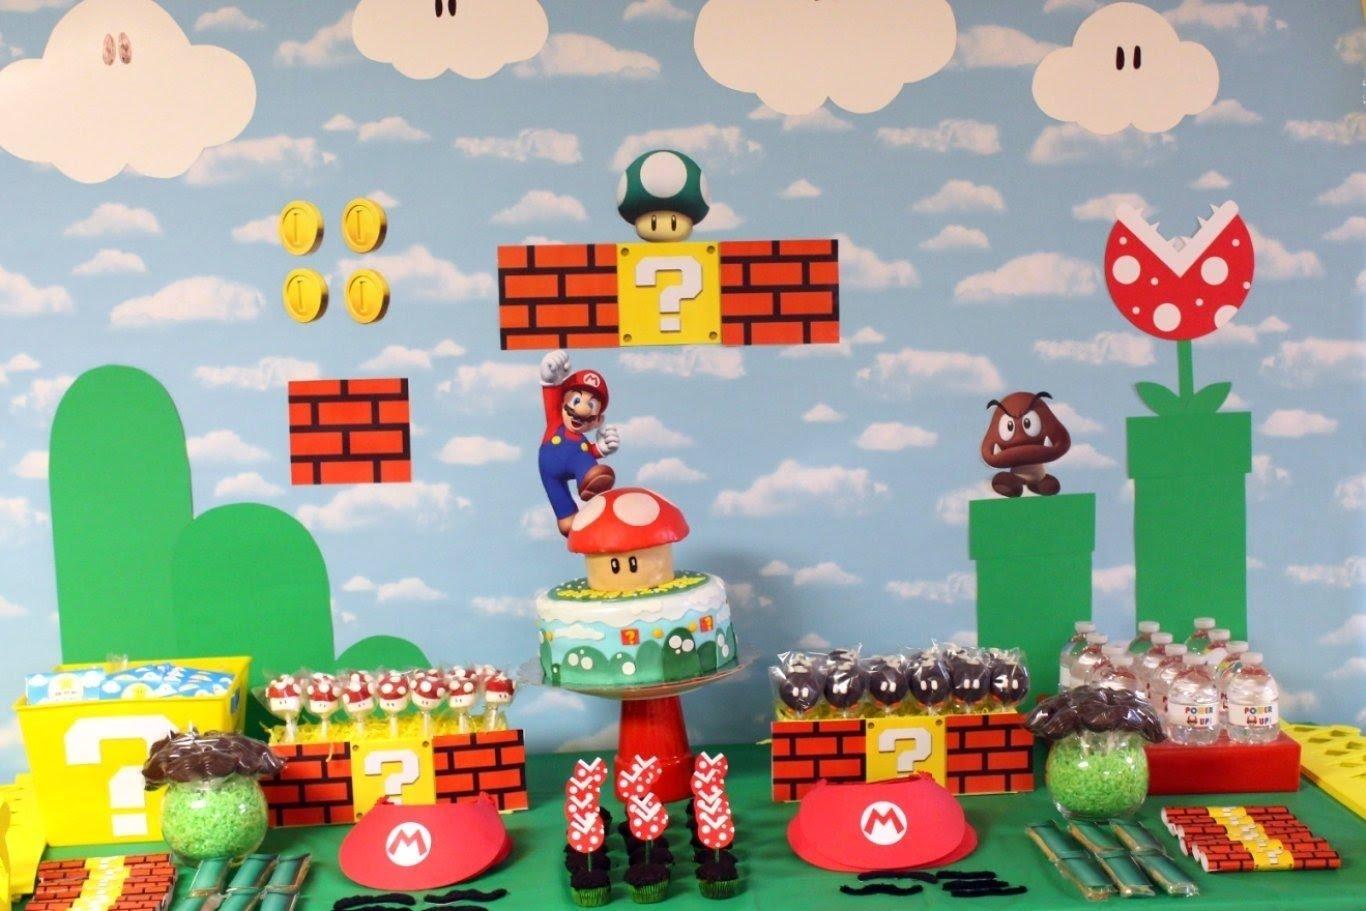 10 Spectacular Mario Brothers Birthday Party Ideas ideas for mario brothers birthday party criolla brithday wedding 2 2020